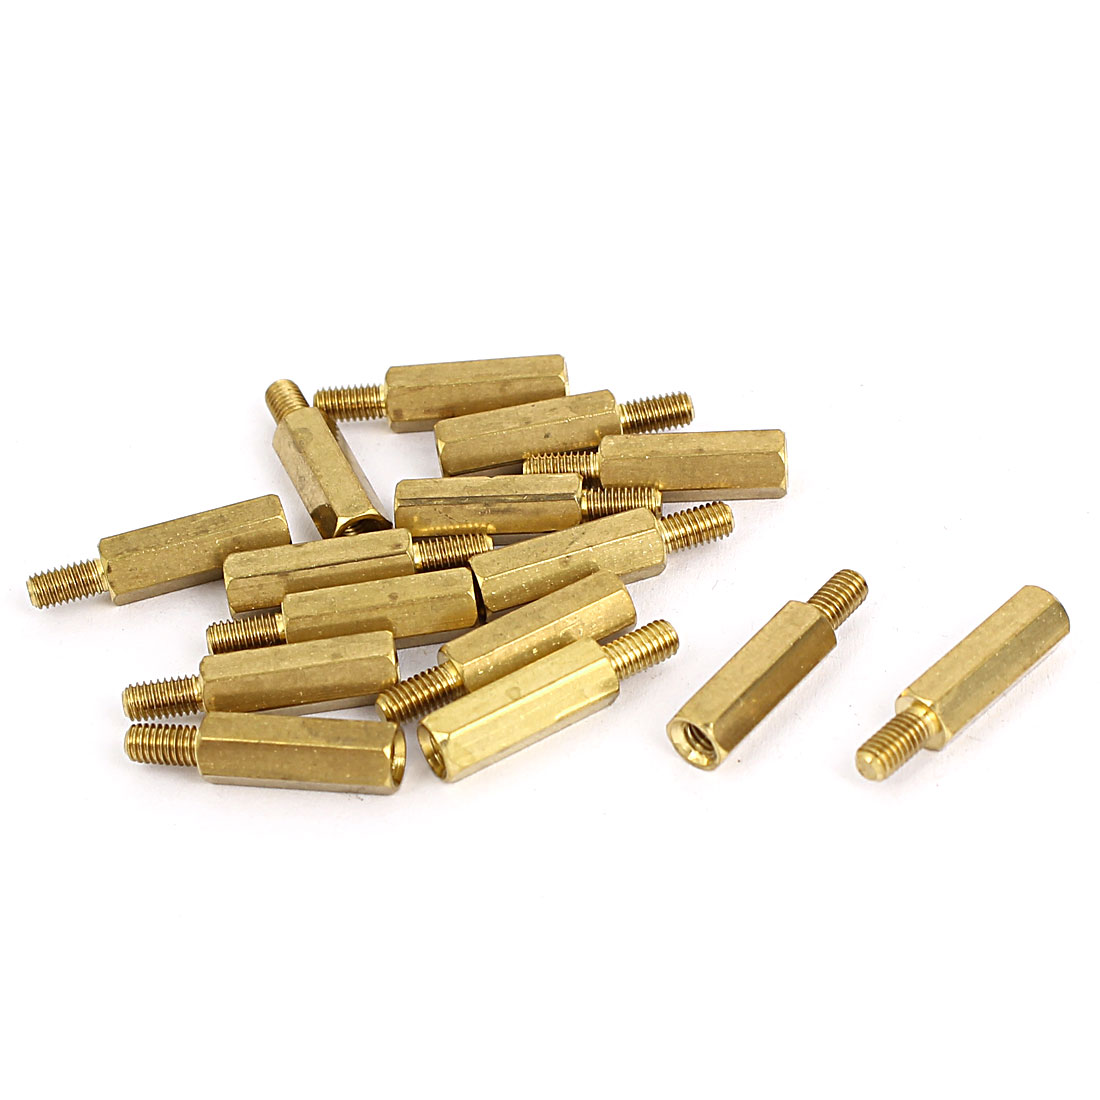 M3 Male/Female Thread Brass Hex Hexagonal PCB Spacer Standoff Support 14mm+6mm 15pcs